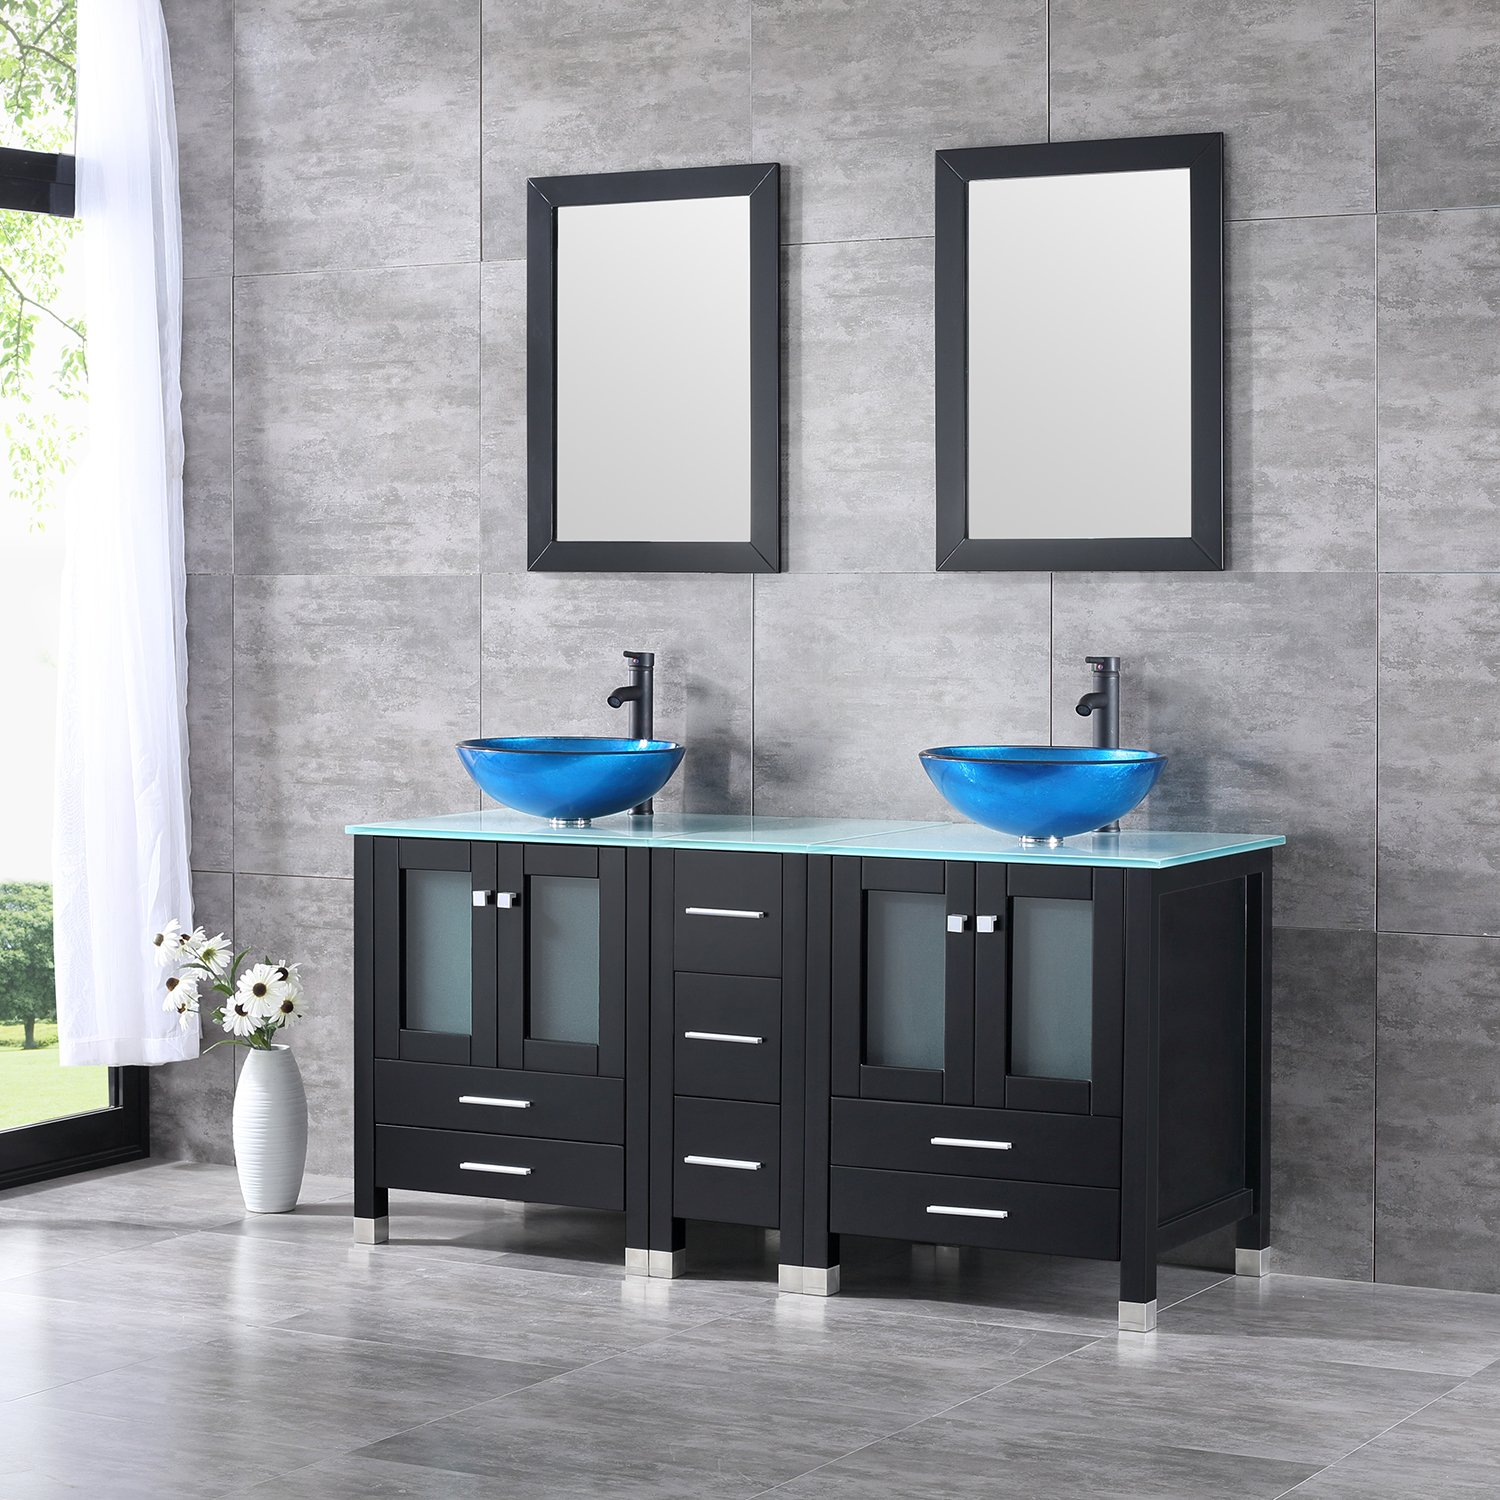 20d90dd7a1a Get Quotations · Walcut 60 Inch Bathroom Vanity and Sink Combo Modern MDF  Double Cabinet with Double Glass Vessel